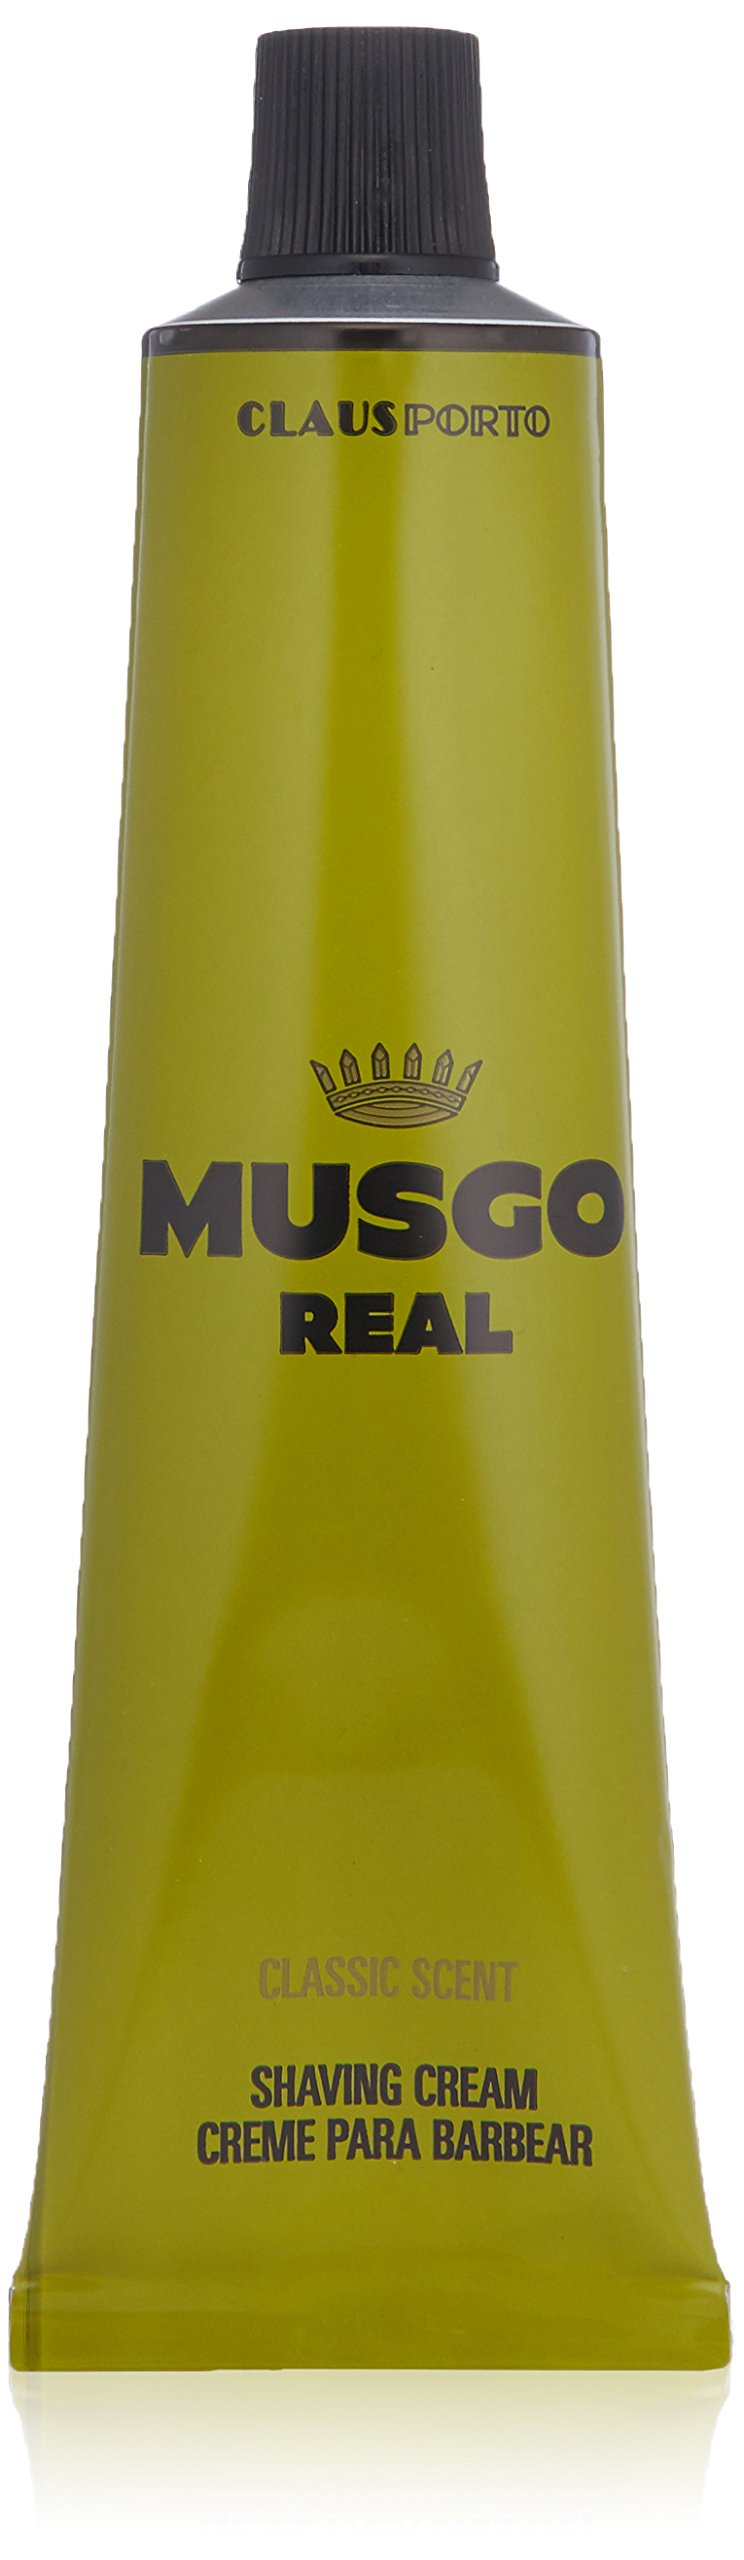 Musgo Real Shaving Cream - Classic Scent 3.4 Ounce